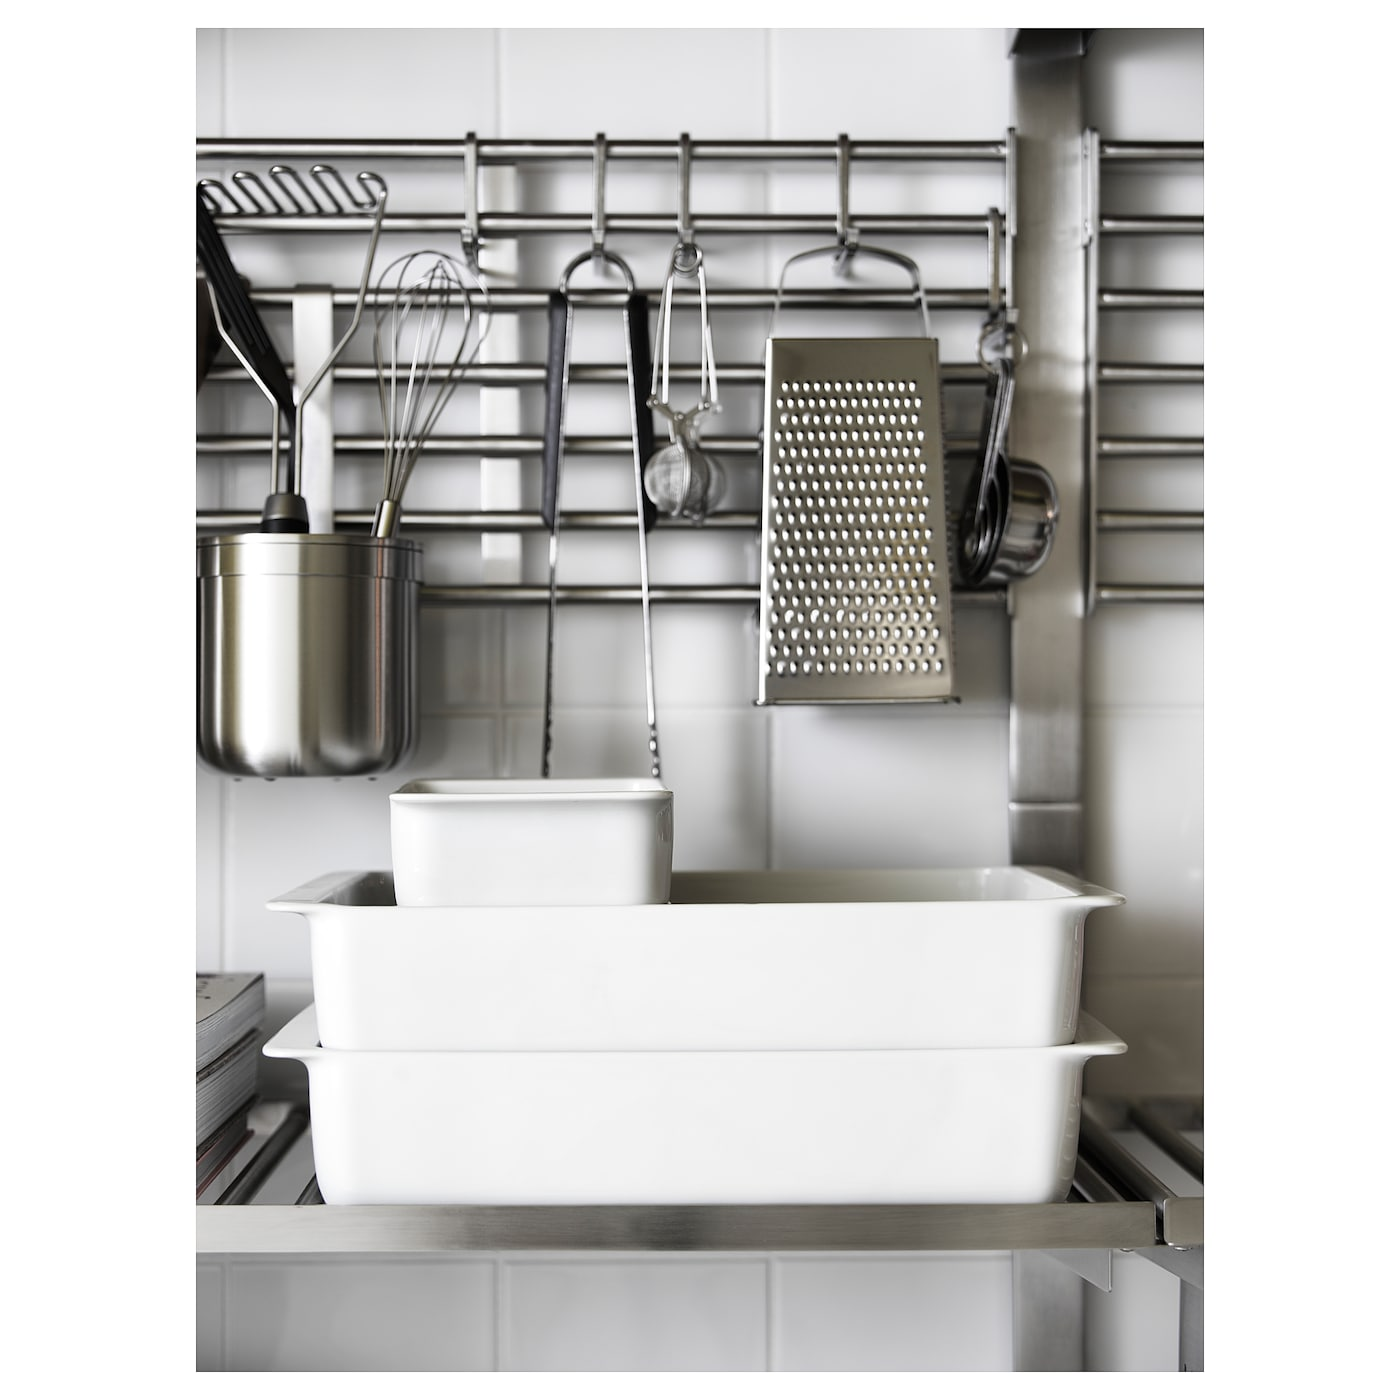 Kungsfors Wall Rack Stainless Steel Ikea